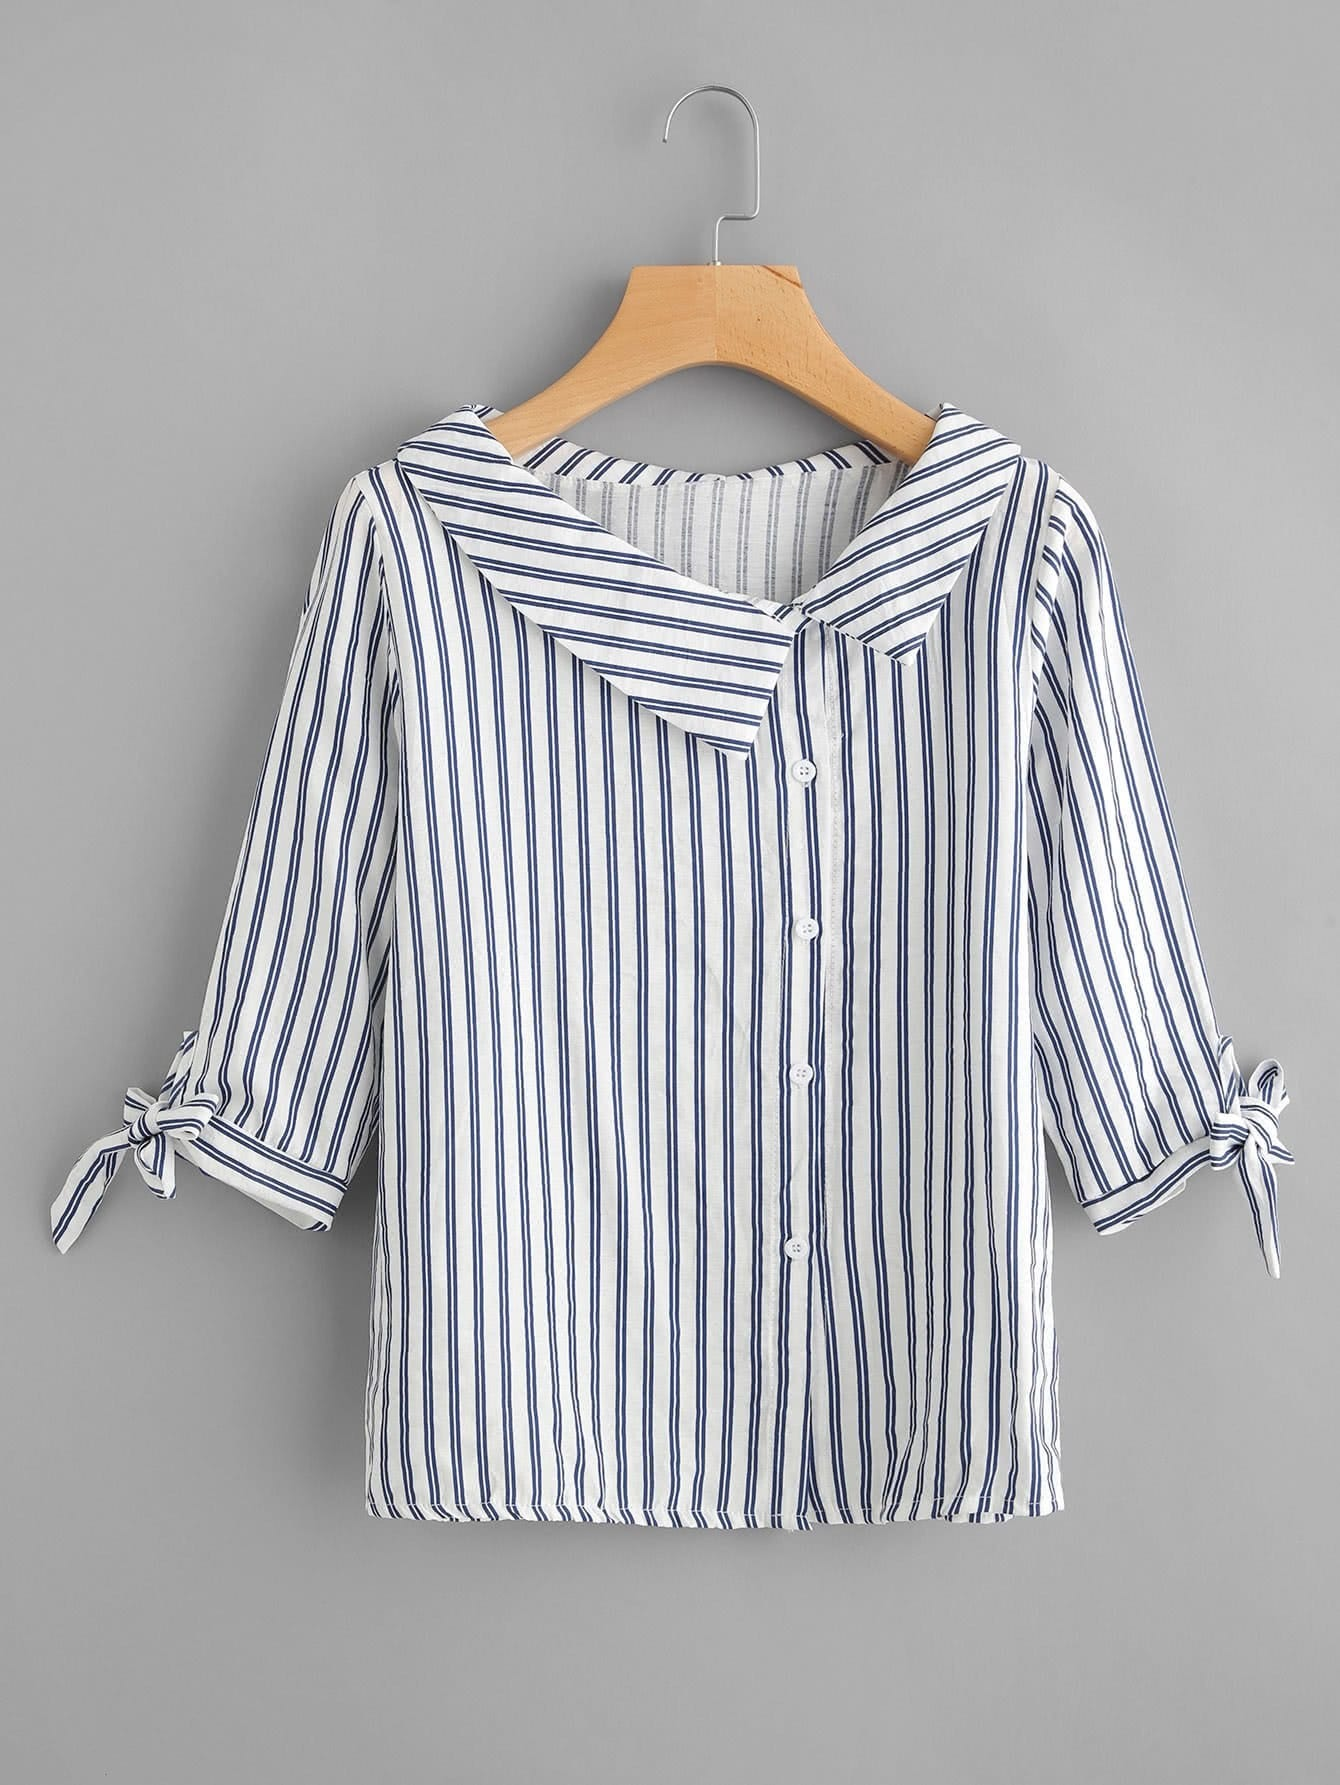 Vertical Striped Tie Cuff Blouse vertical striped embroidered half placket tie cuff blouse